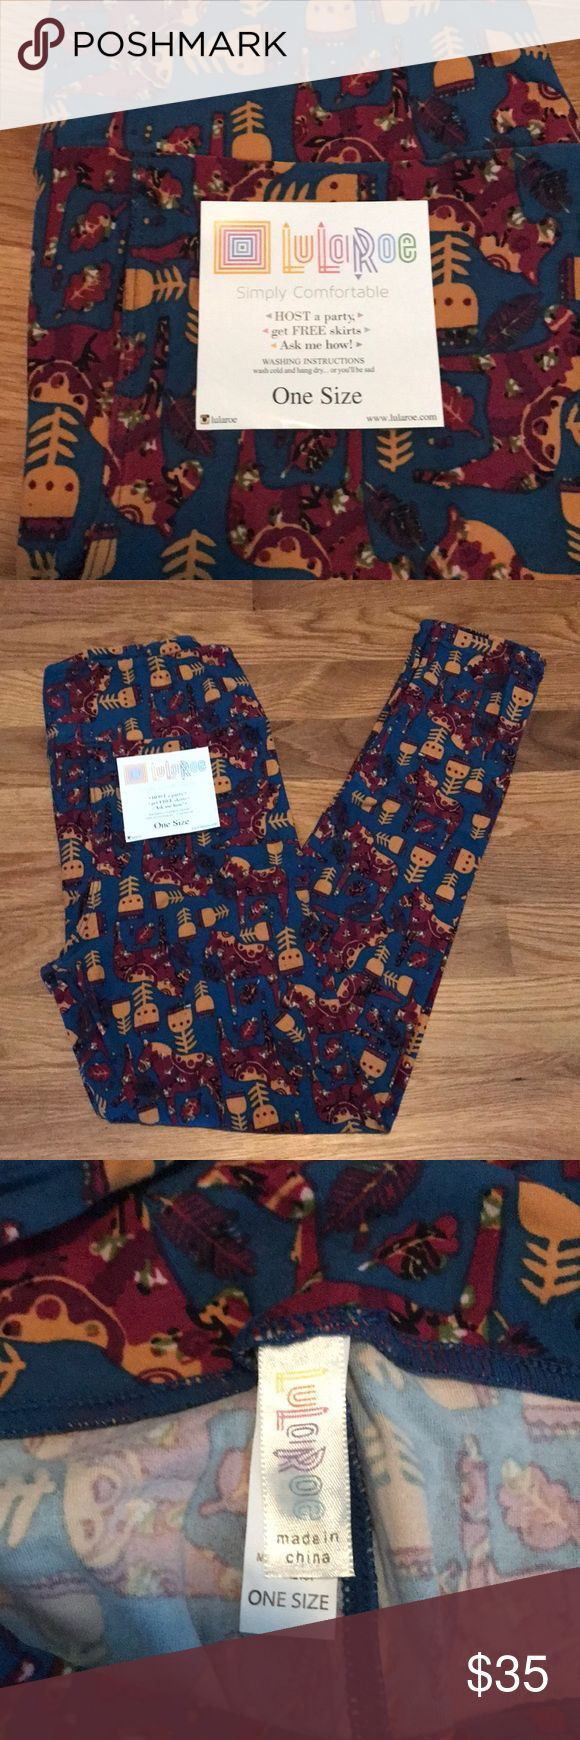 NEW Lularoe OS Legging These are NEW never worn Lularoe OS Leggings. These are adorable with arrows on them and would be great for fall! Oh so soft and comfy! LuLaRoe Pants Leggings